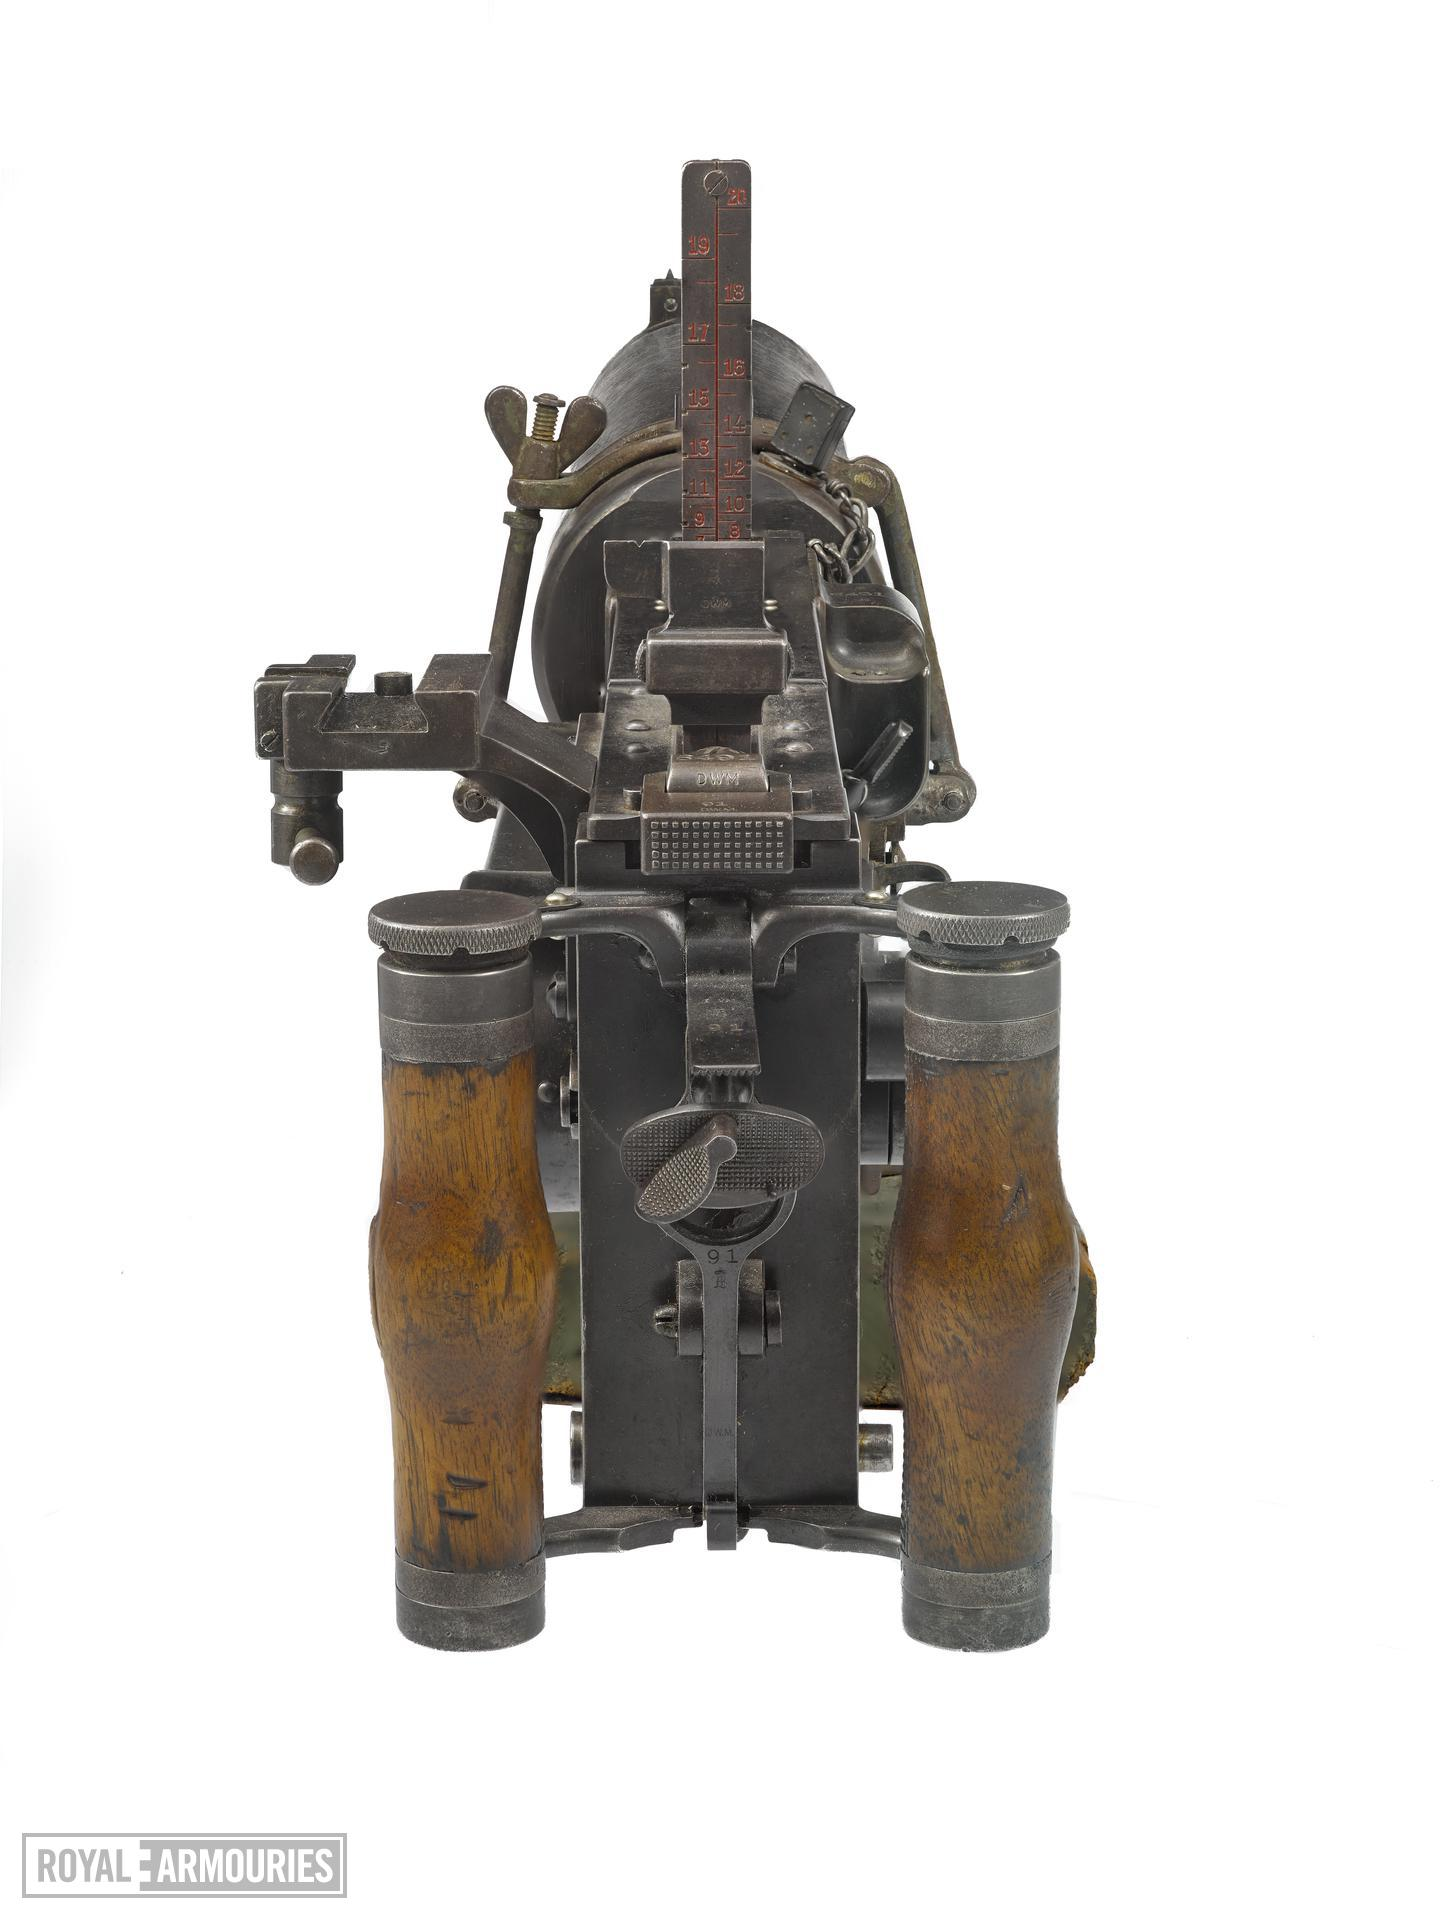 Maxim MG08 centrefire automatic machine gun , Germany